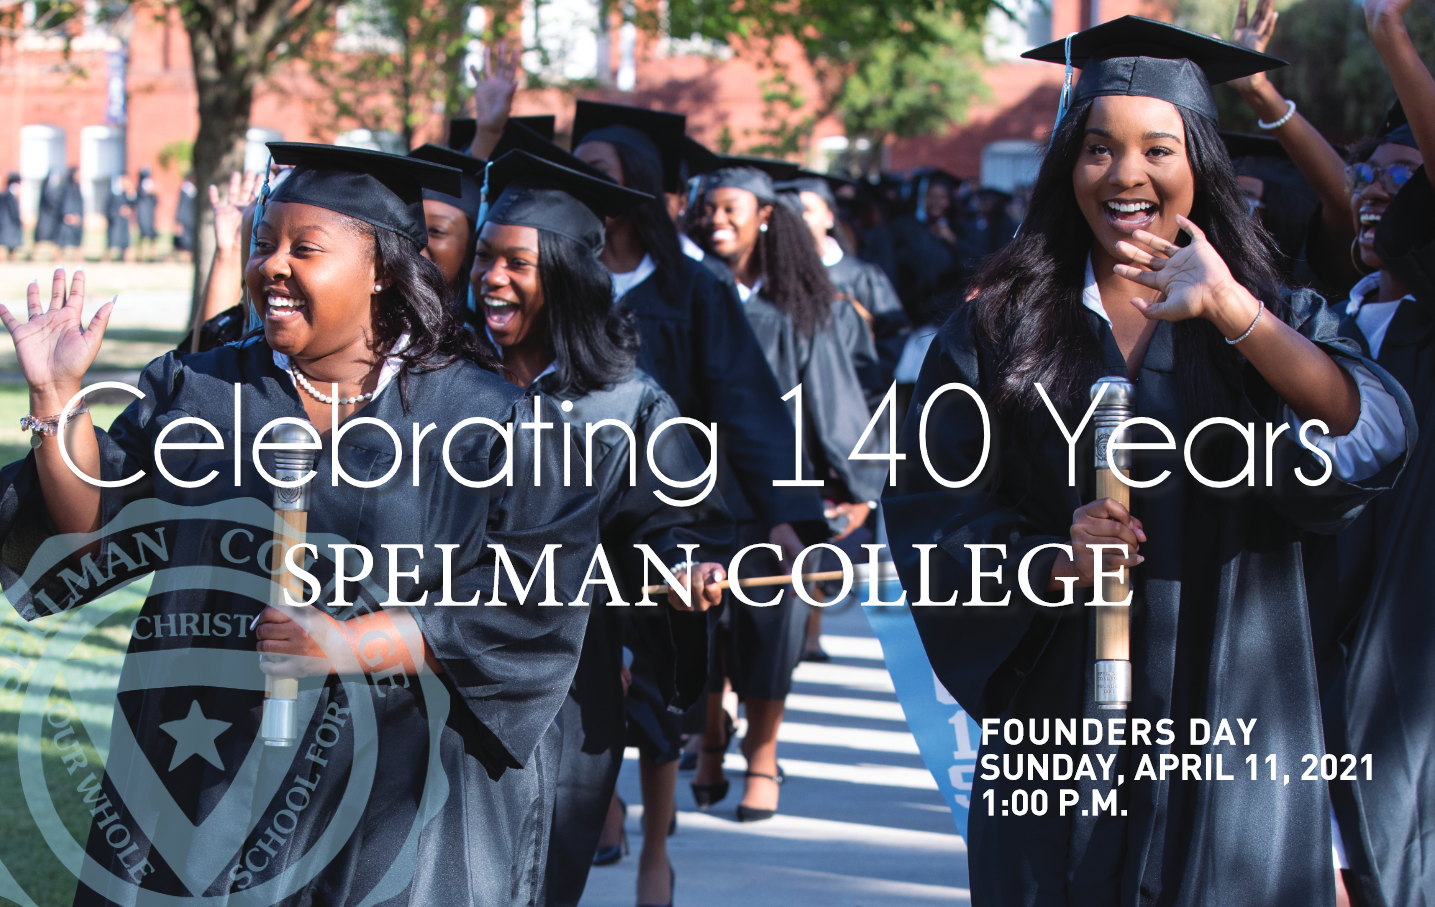 Spelman College 140th Founders Day Program